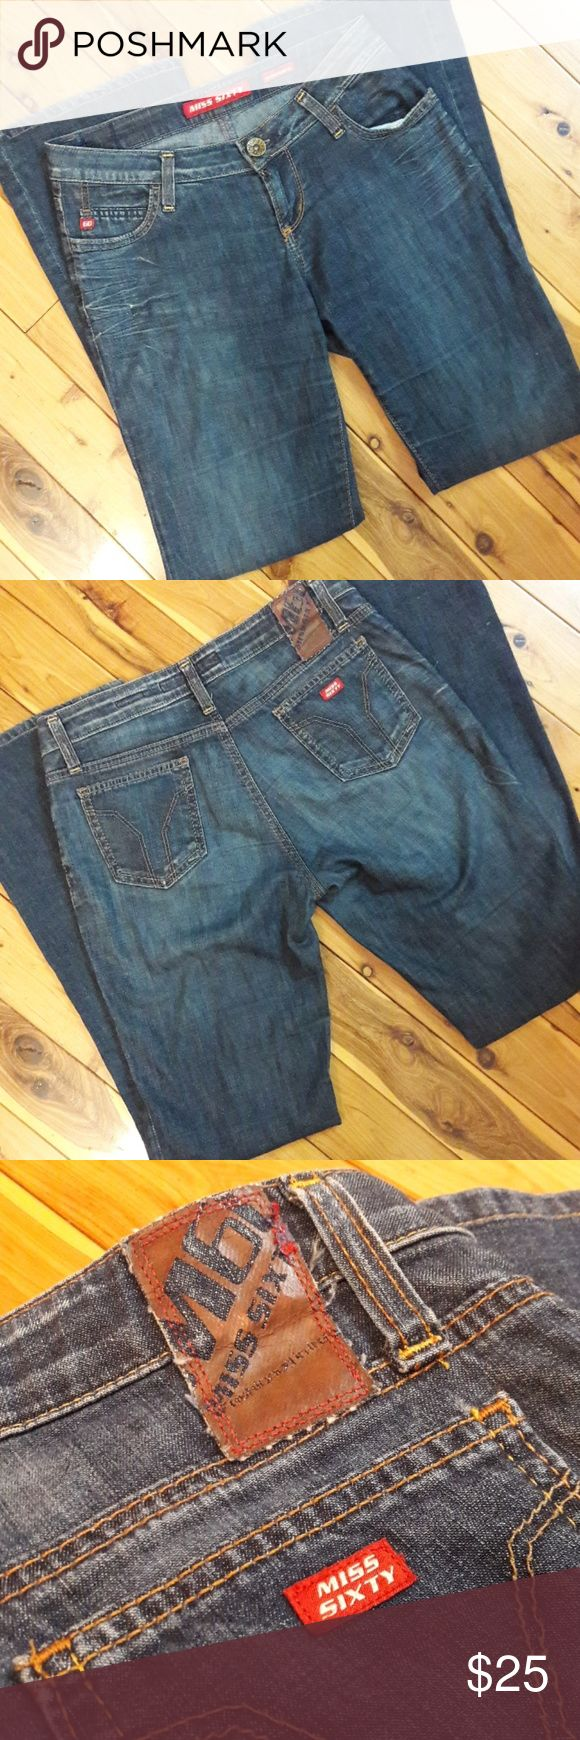 """Miss Sixty Extra Low Bootcut Jeans, Size 28 So soft! These are a cotton blend, made in Italy. Gently used with some minor wear below the right pocket.   Measurements: Waist: 14"""" Hips: 17.5"""" Rise: 7.5"""" Length: 38"""" Inseam: 30""""  Please message me with any questions. Thank you. Miss Sixty Jeans Boot Cut"""